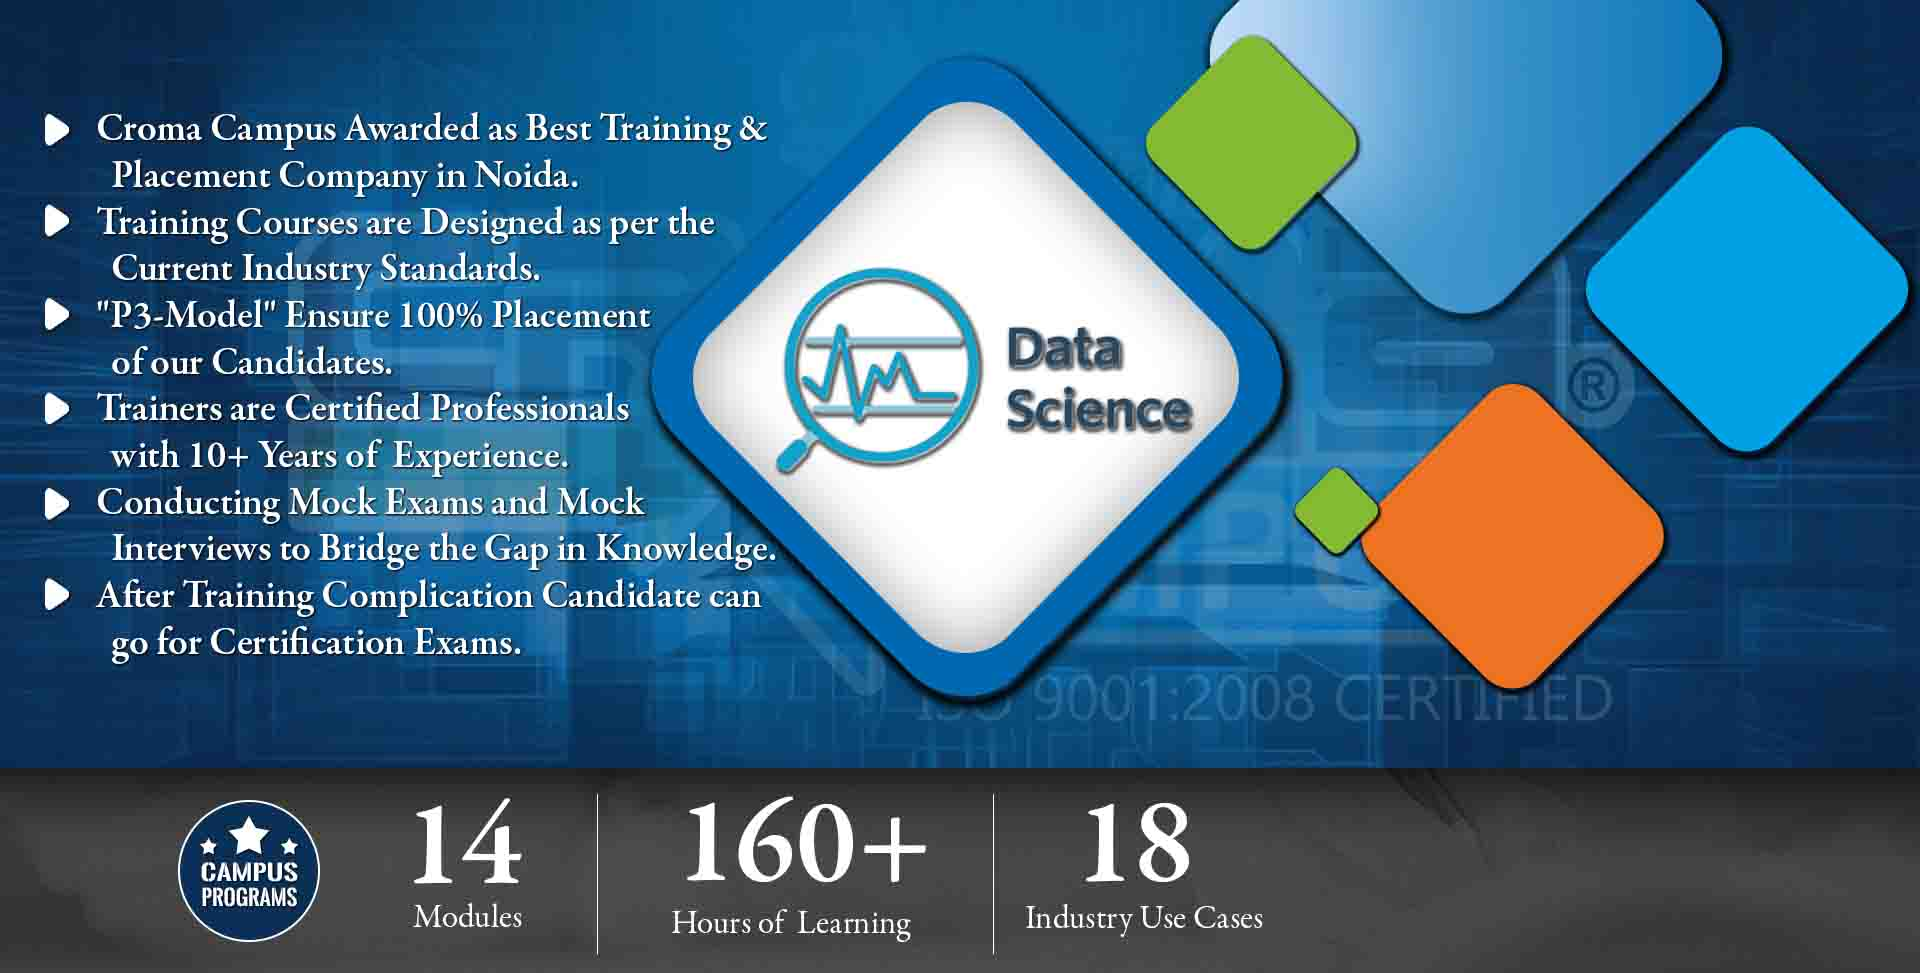 Data Science Training in Gurgaon- Croma Campus